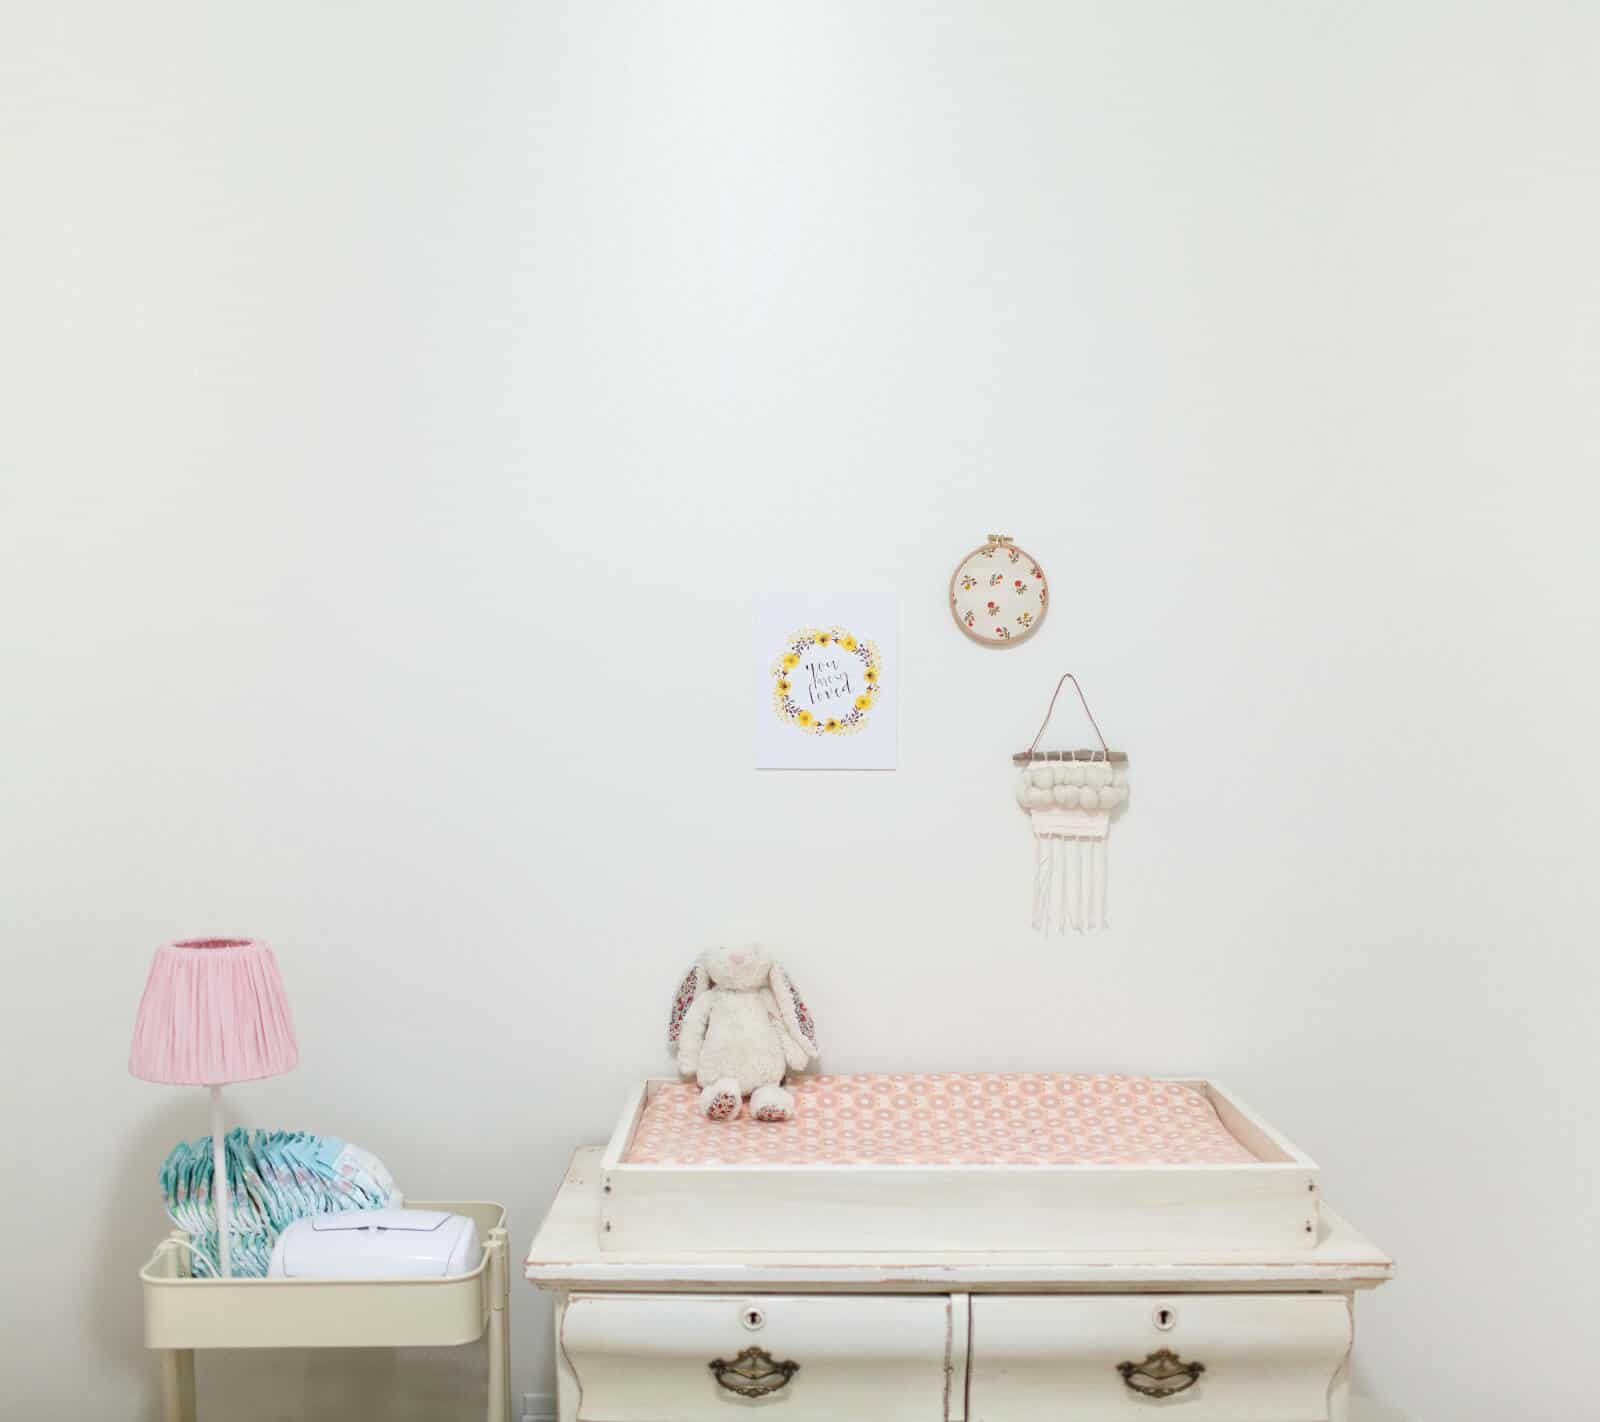 Sweet And Stylish DIY Decorations For Your Child's Room